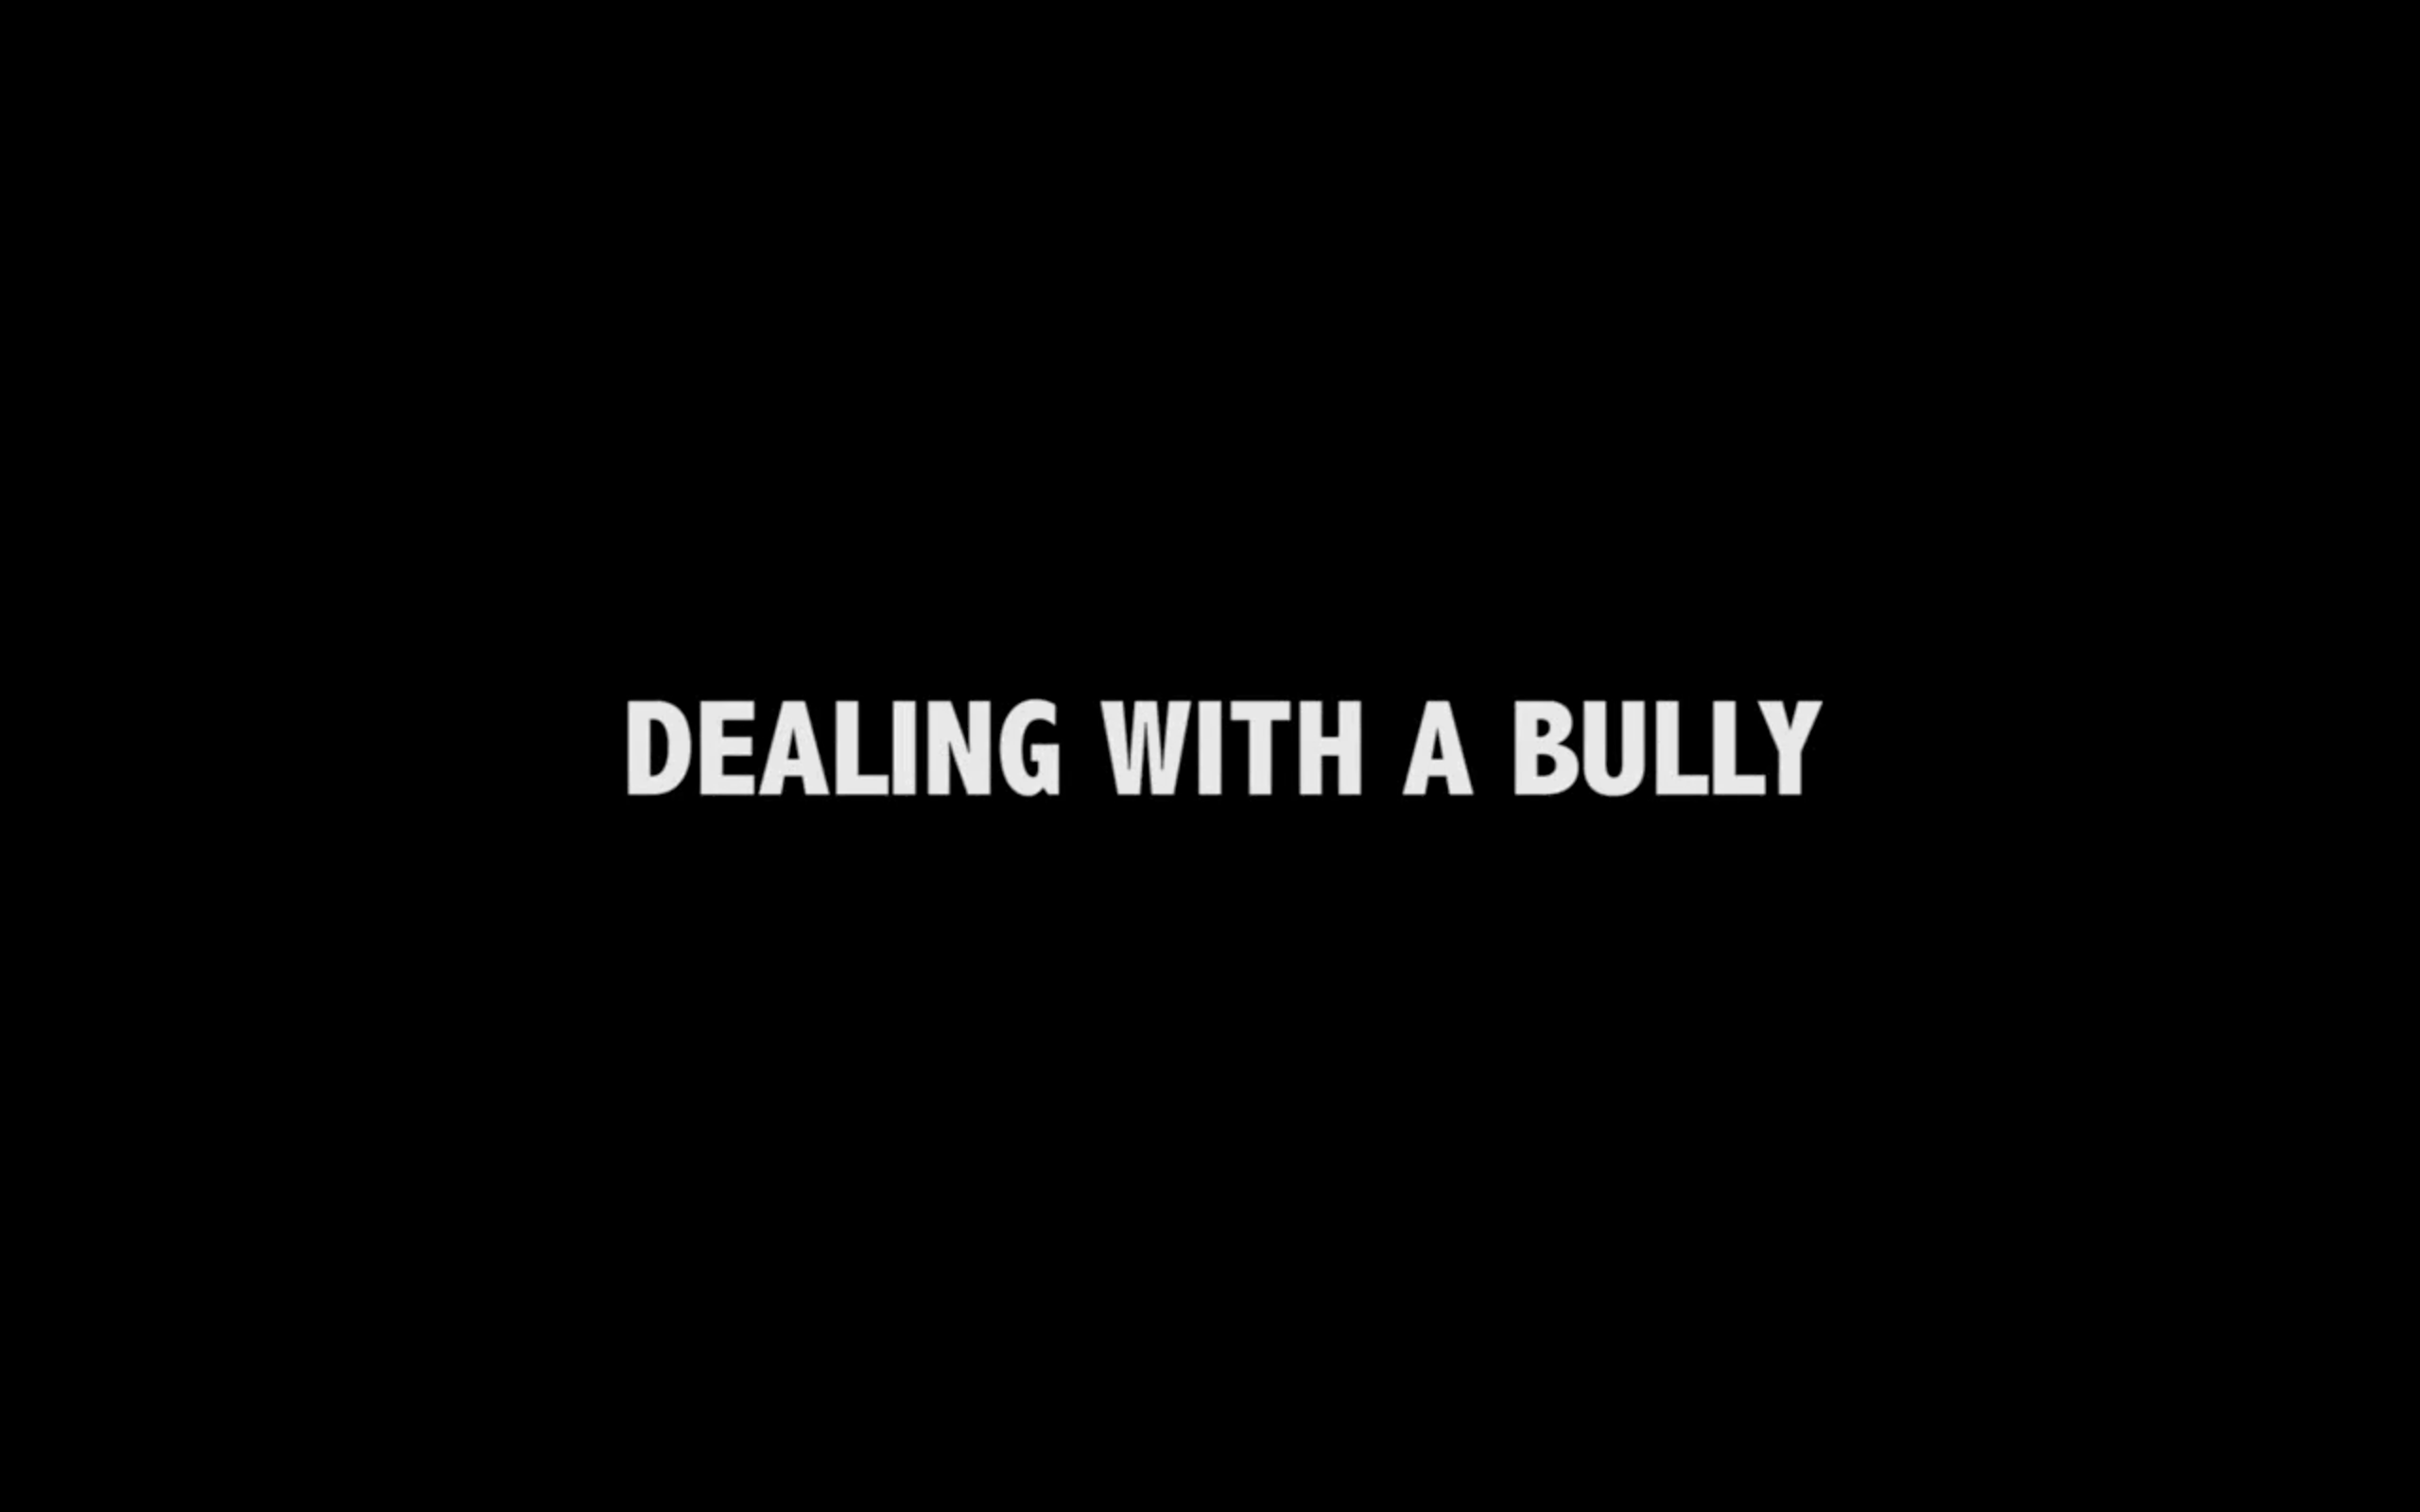 Dealing With A Bully